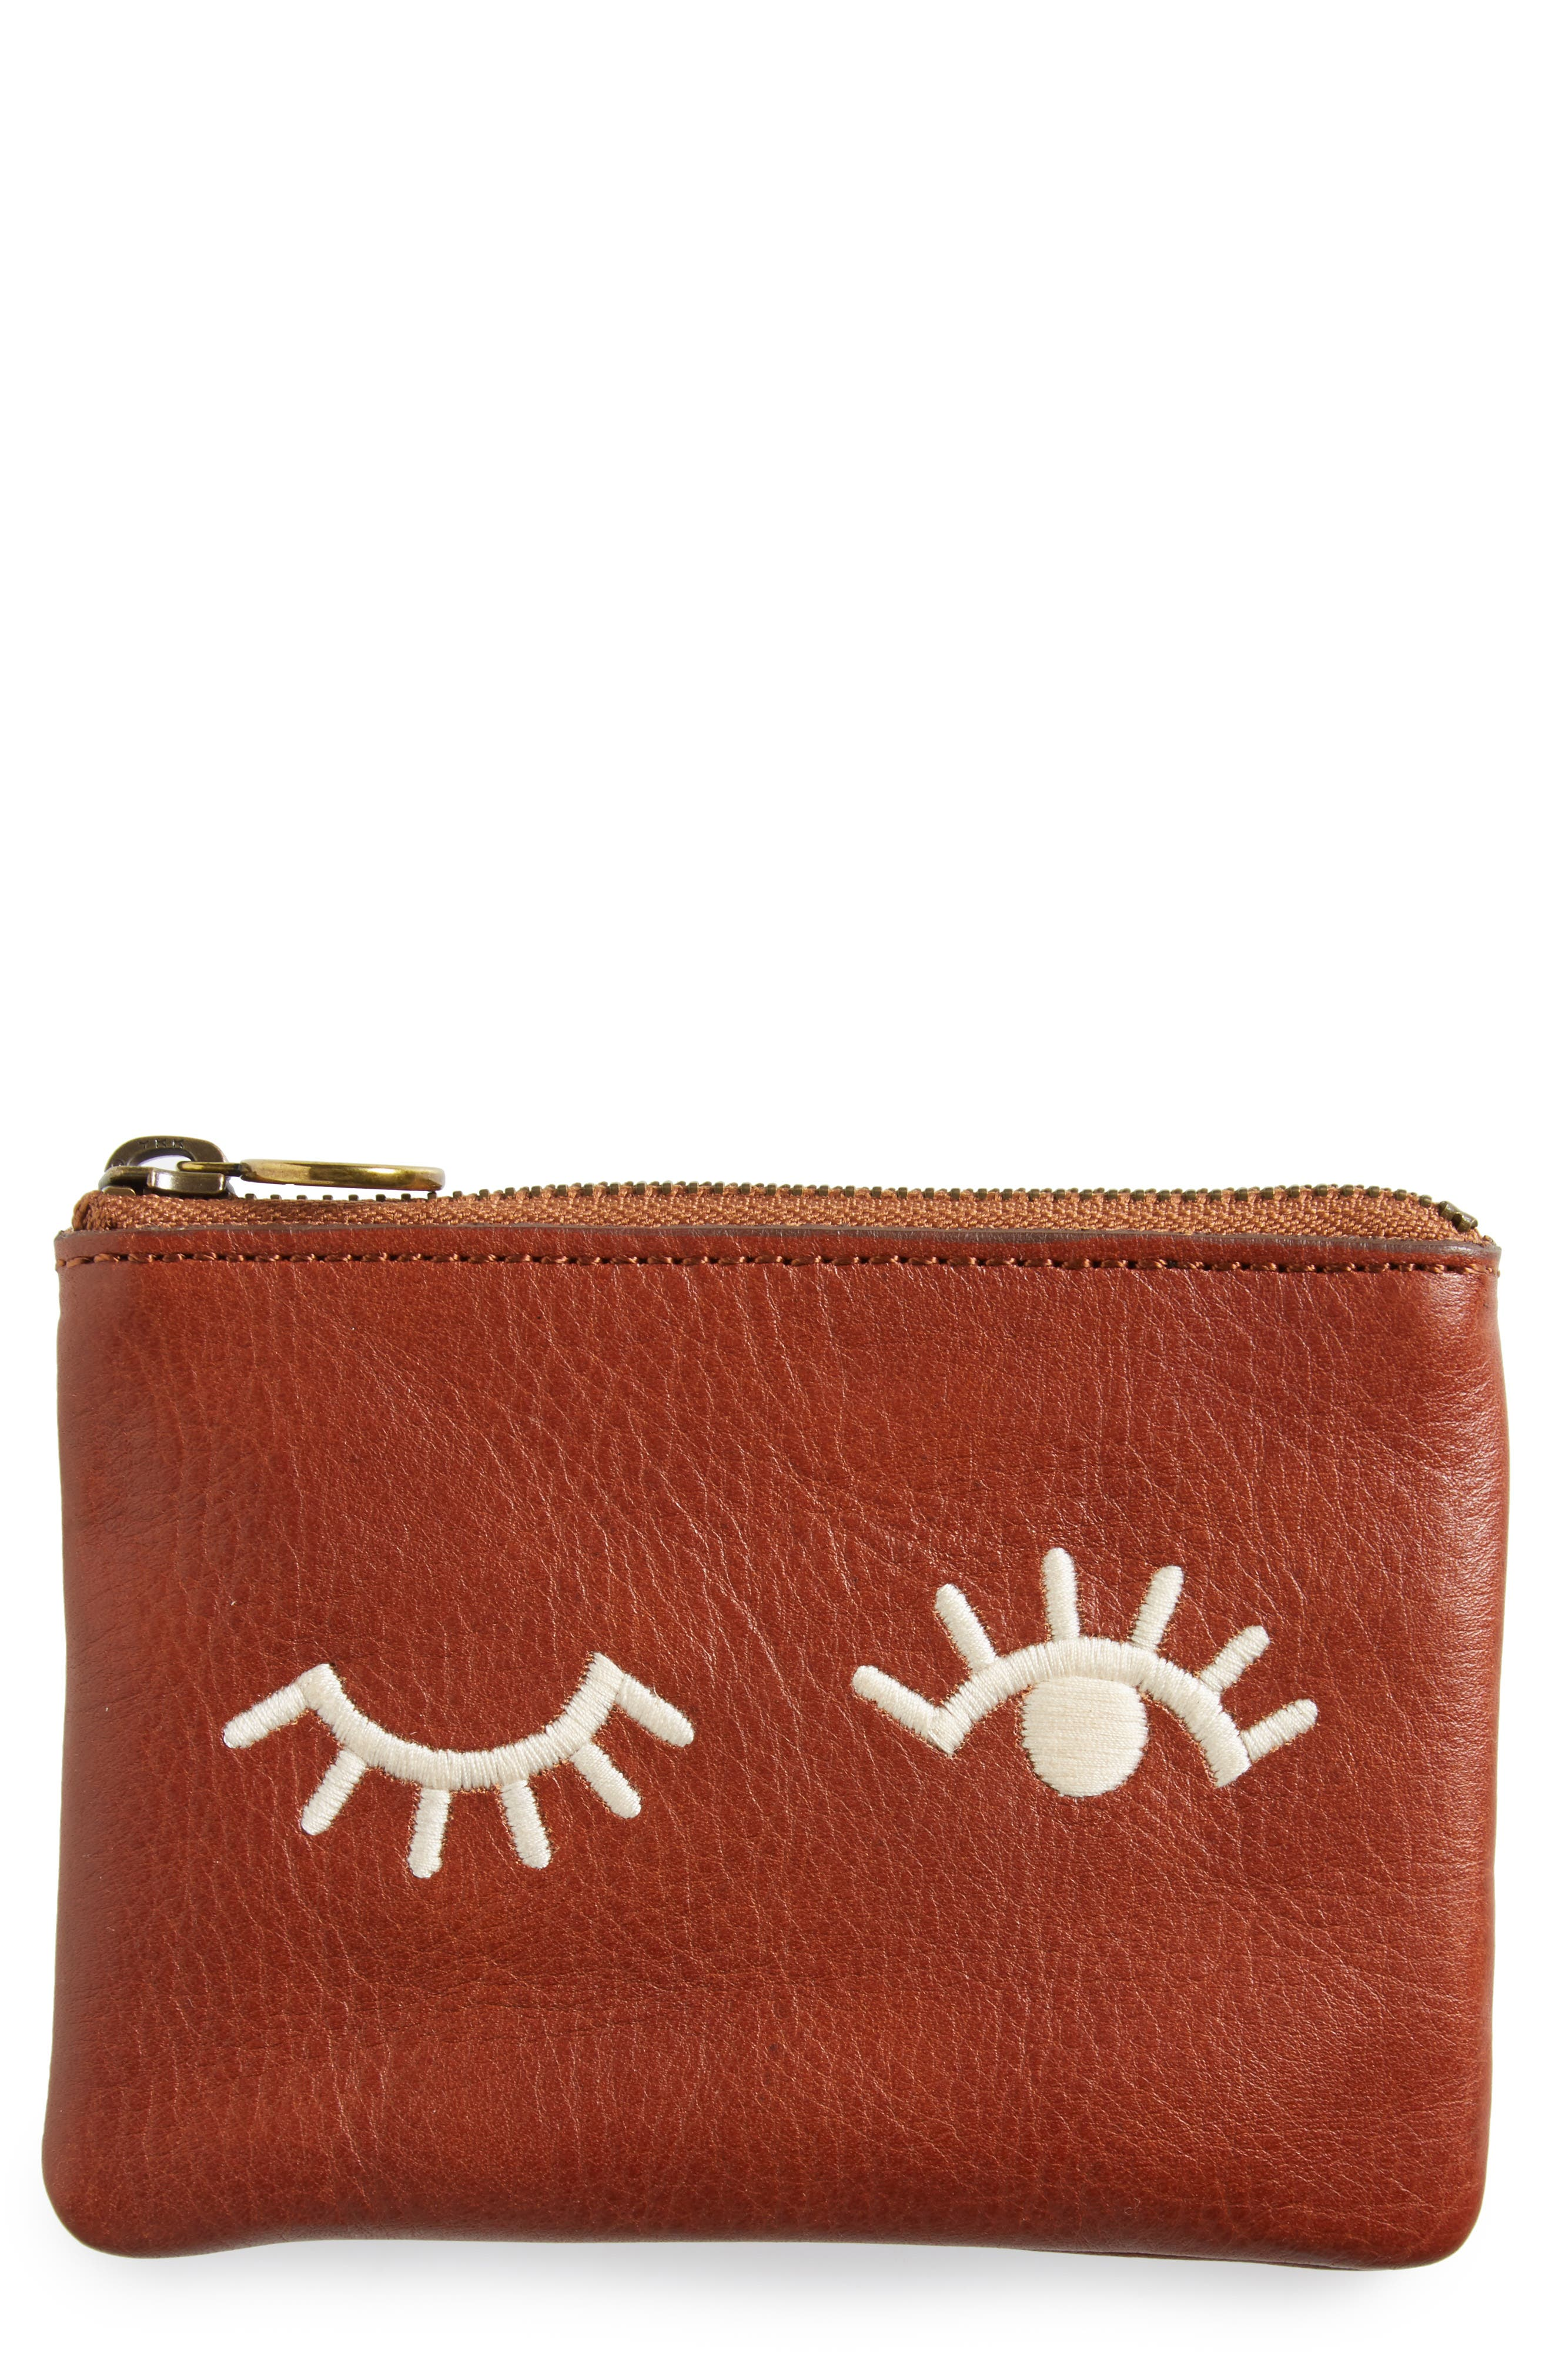 Madewell The Small Pouch Clutch: Embroidered Face Edition